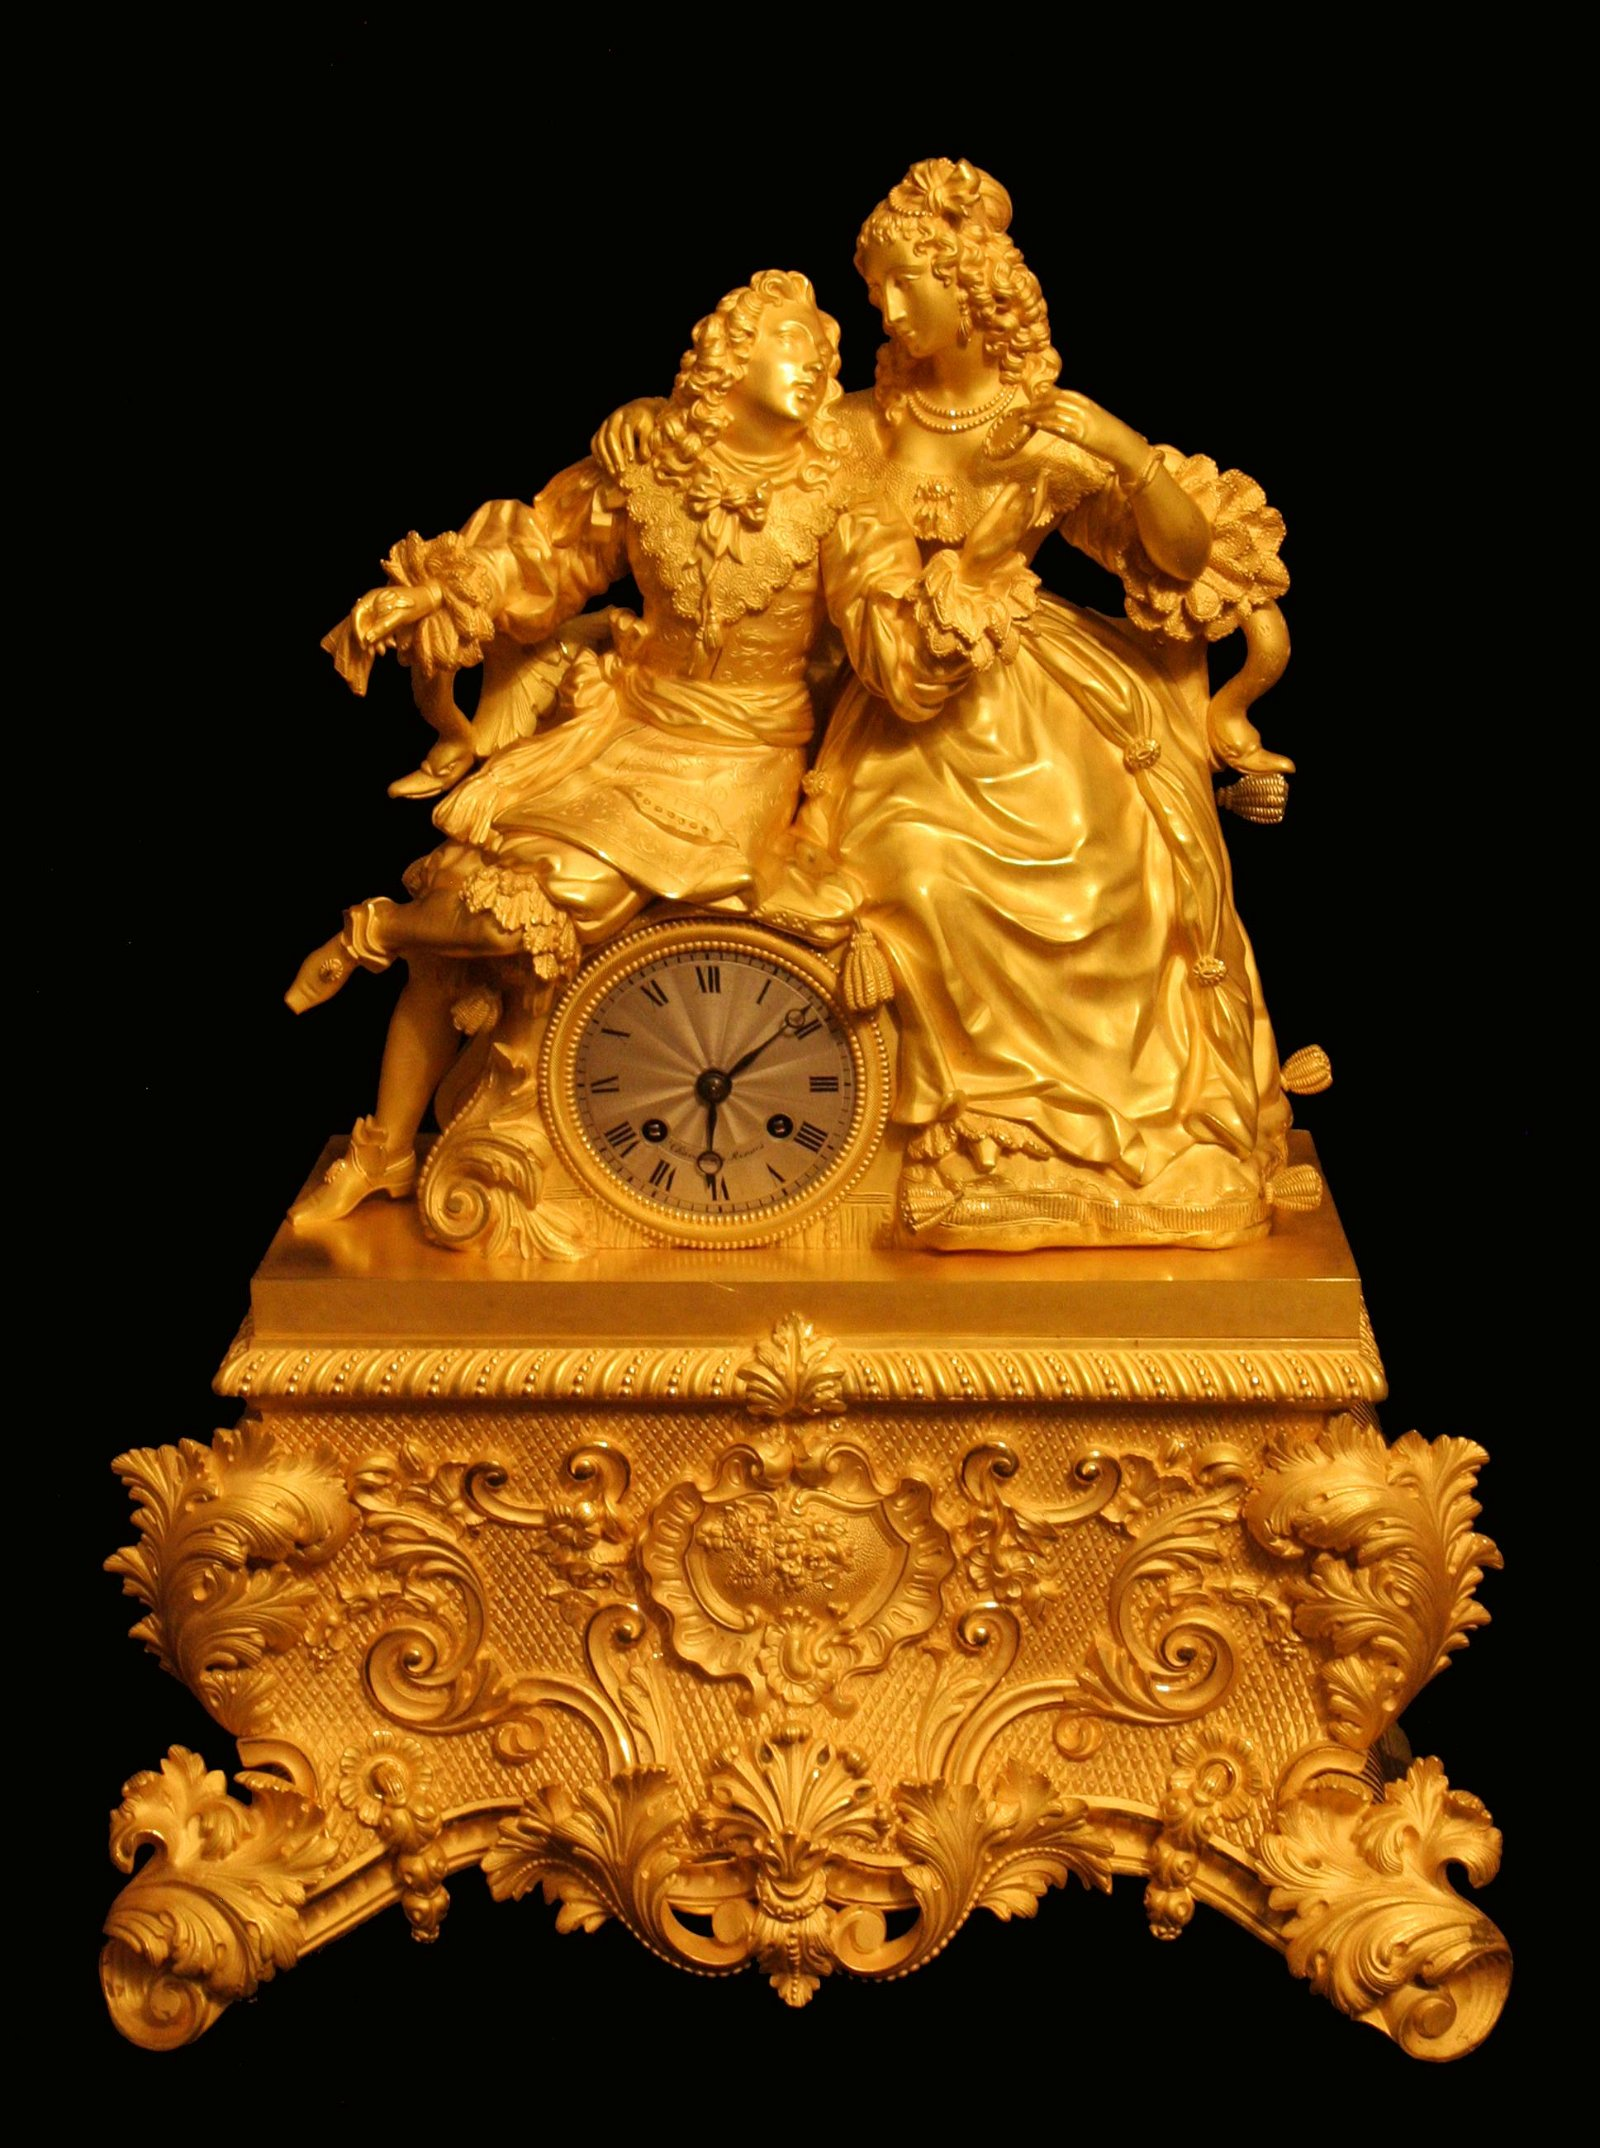 CHAVANON A RENNES - ANTIQUE FRENCH GOLD PLATED BRONZE